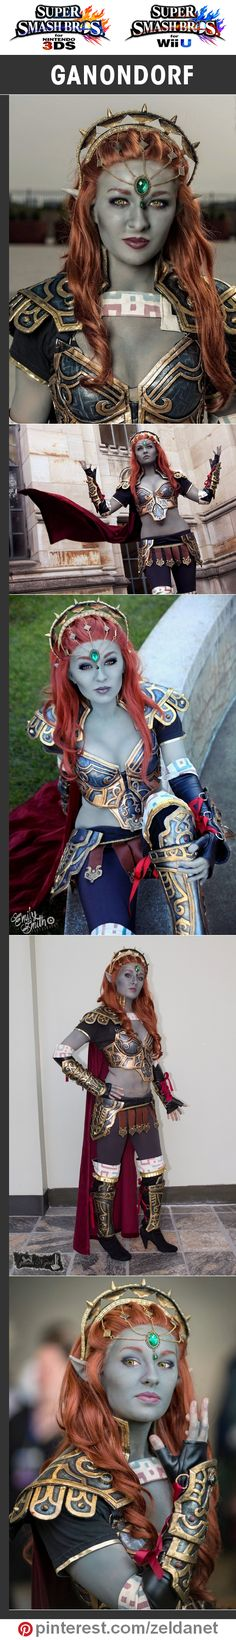 Ganondorf by Ely Renae in Super Smash Bros crossplay series | @nintendo #3DS #WiiU Credits in original post at http://www.pinterest.com/zeldanet/super-smash-bros-cosplay-series/